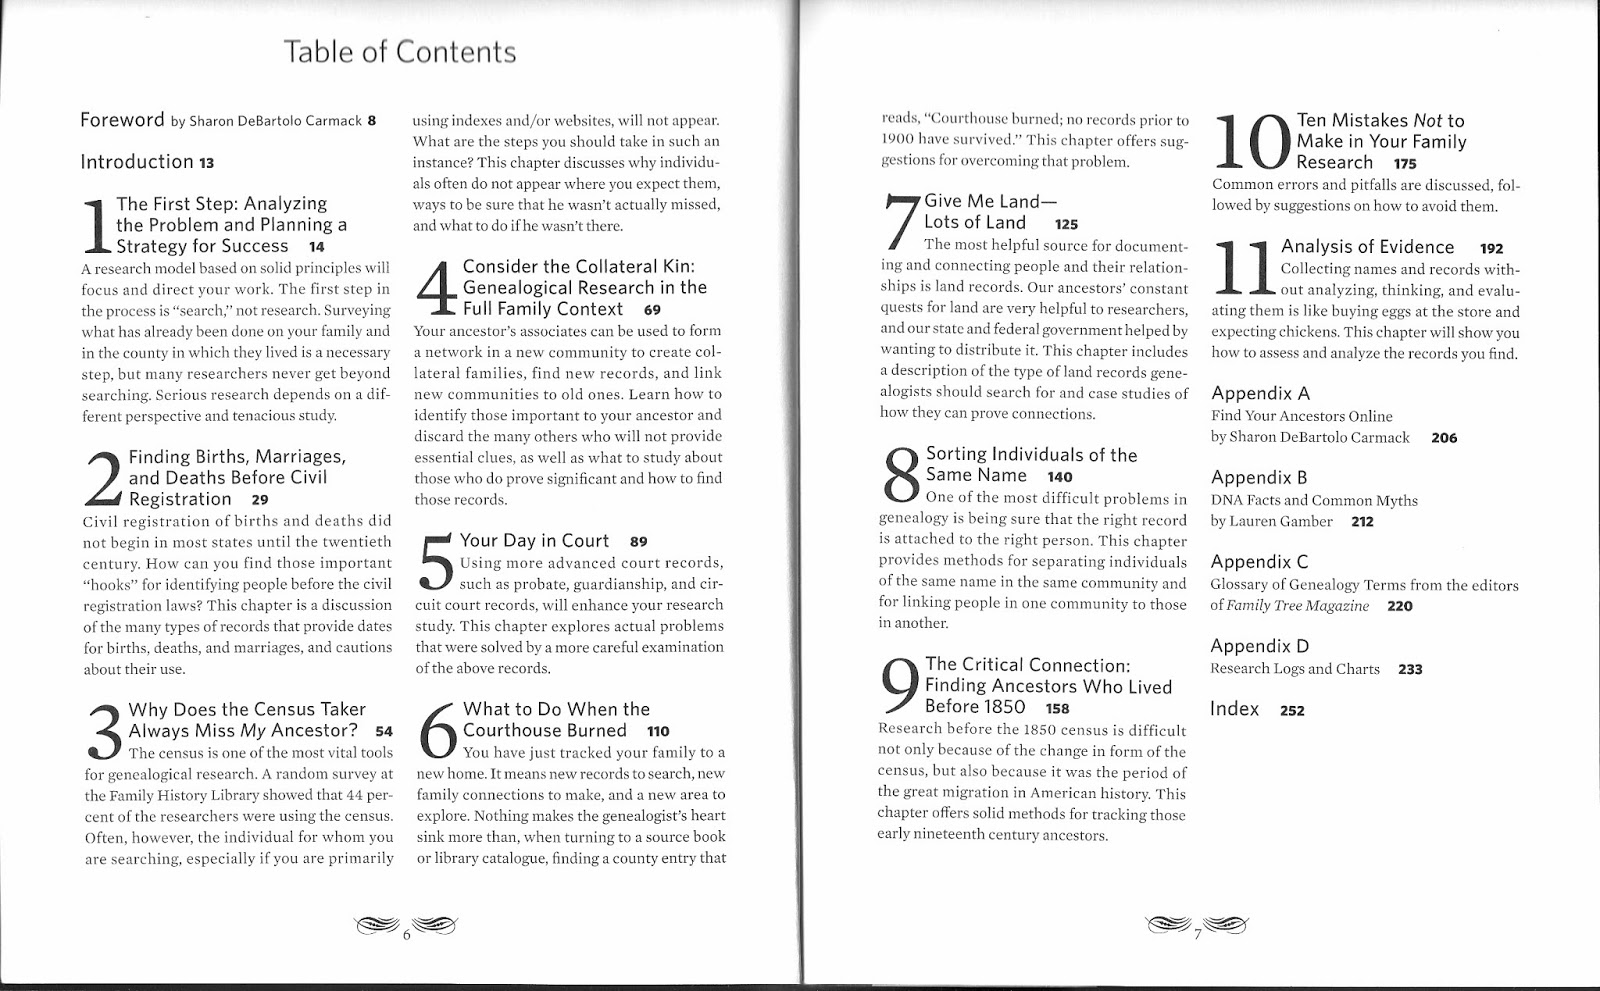 Table of Contents. Click image to enlarge.